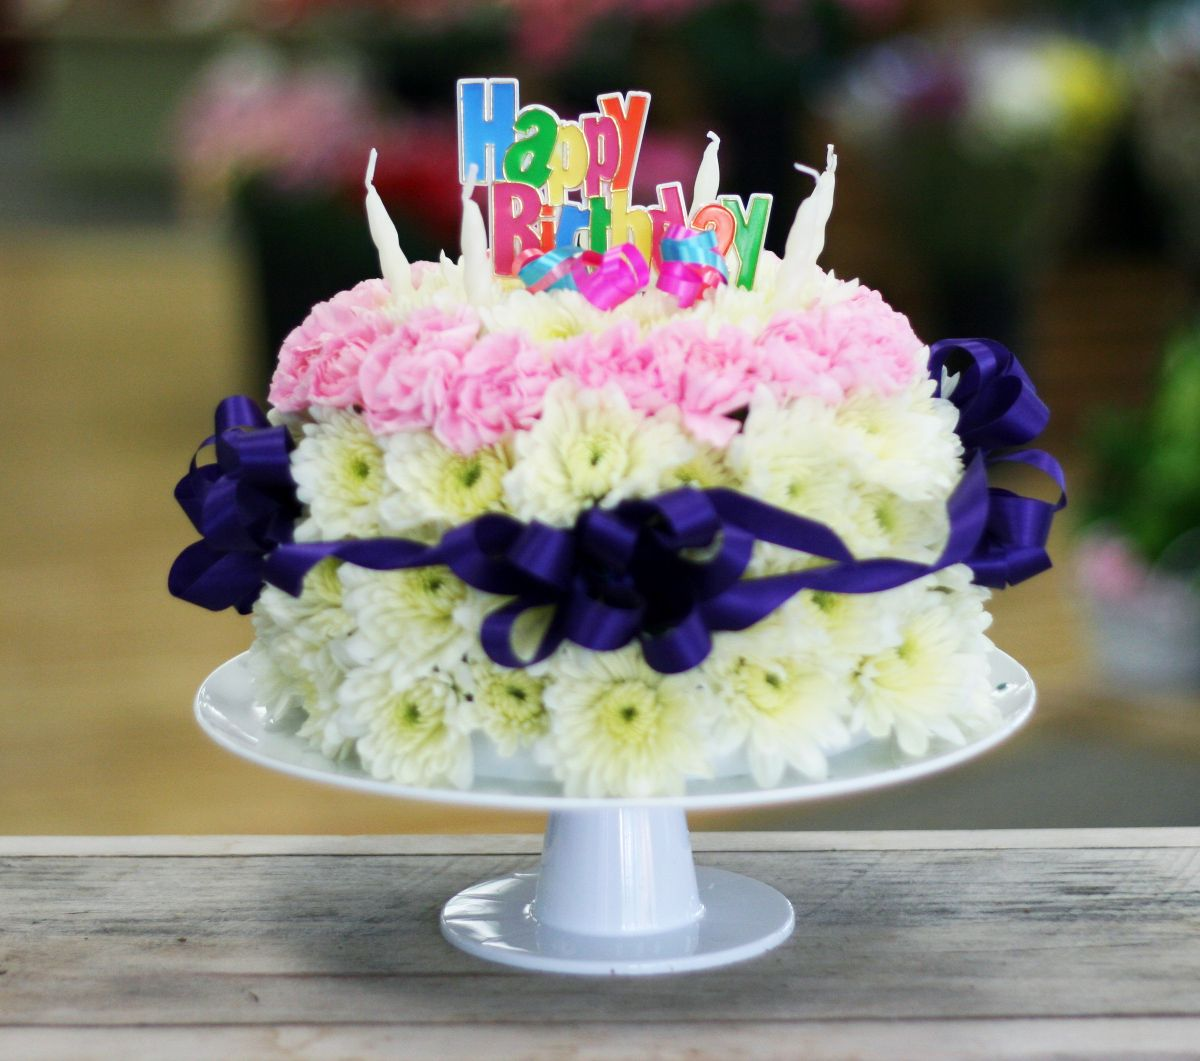 35 Awesome birthday flowers and cake images collections